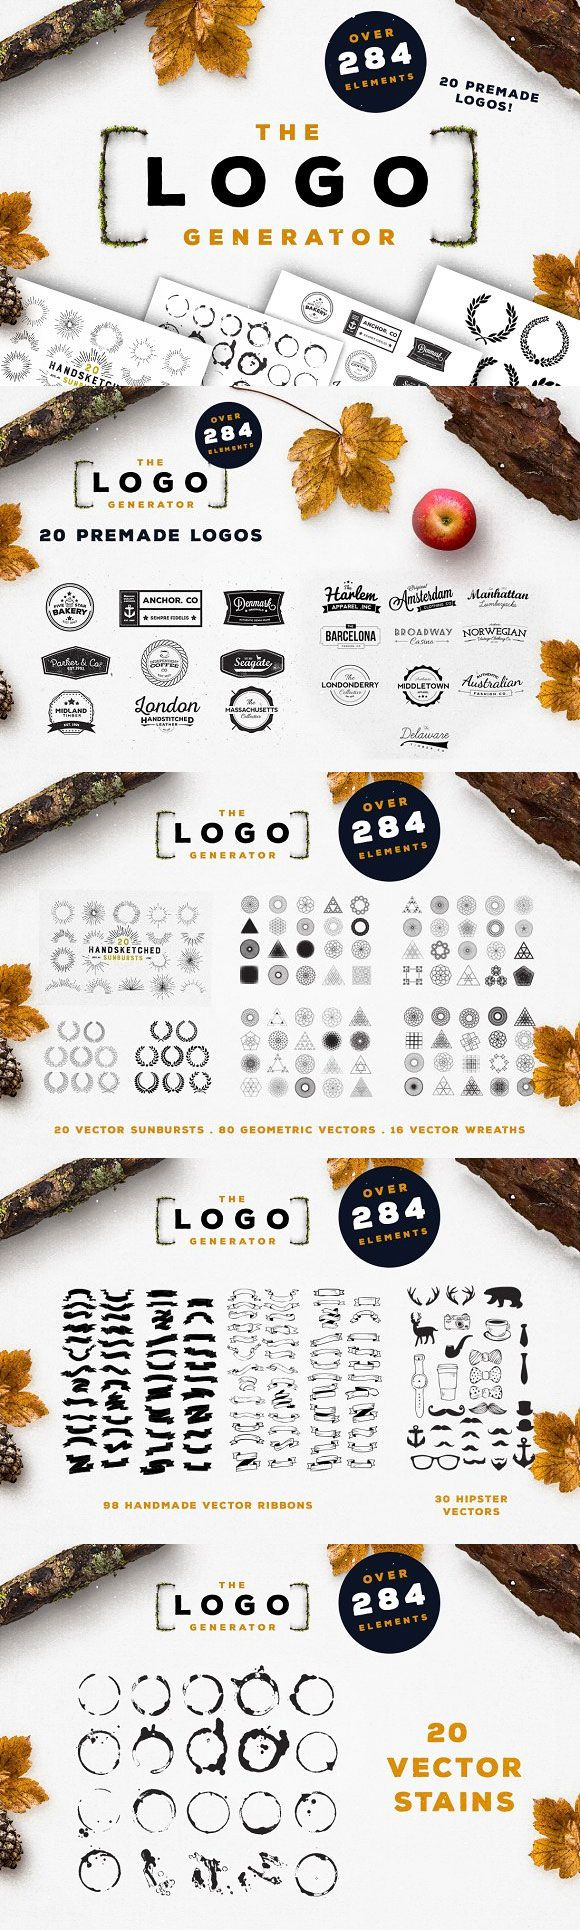 Create your next #logo with our Logo Generator, incuding over 284+ Fully Scaleable Elements including 20 Premade #Vintage #Logos, #Geometric Shapes, Stains, Sunbursts, Wreaths/Laurels, Ribbons and #Hipster #Vector Elements.